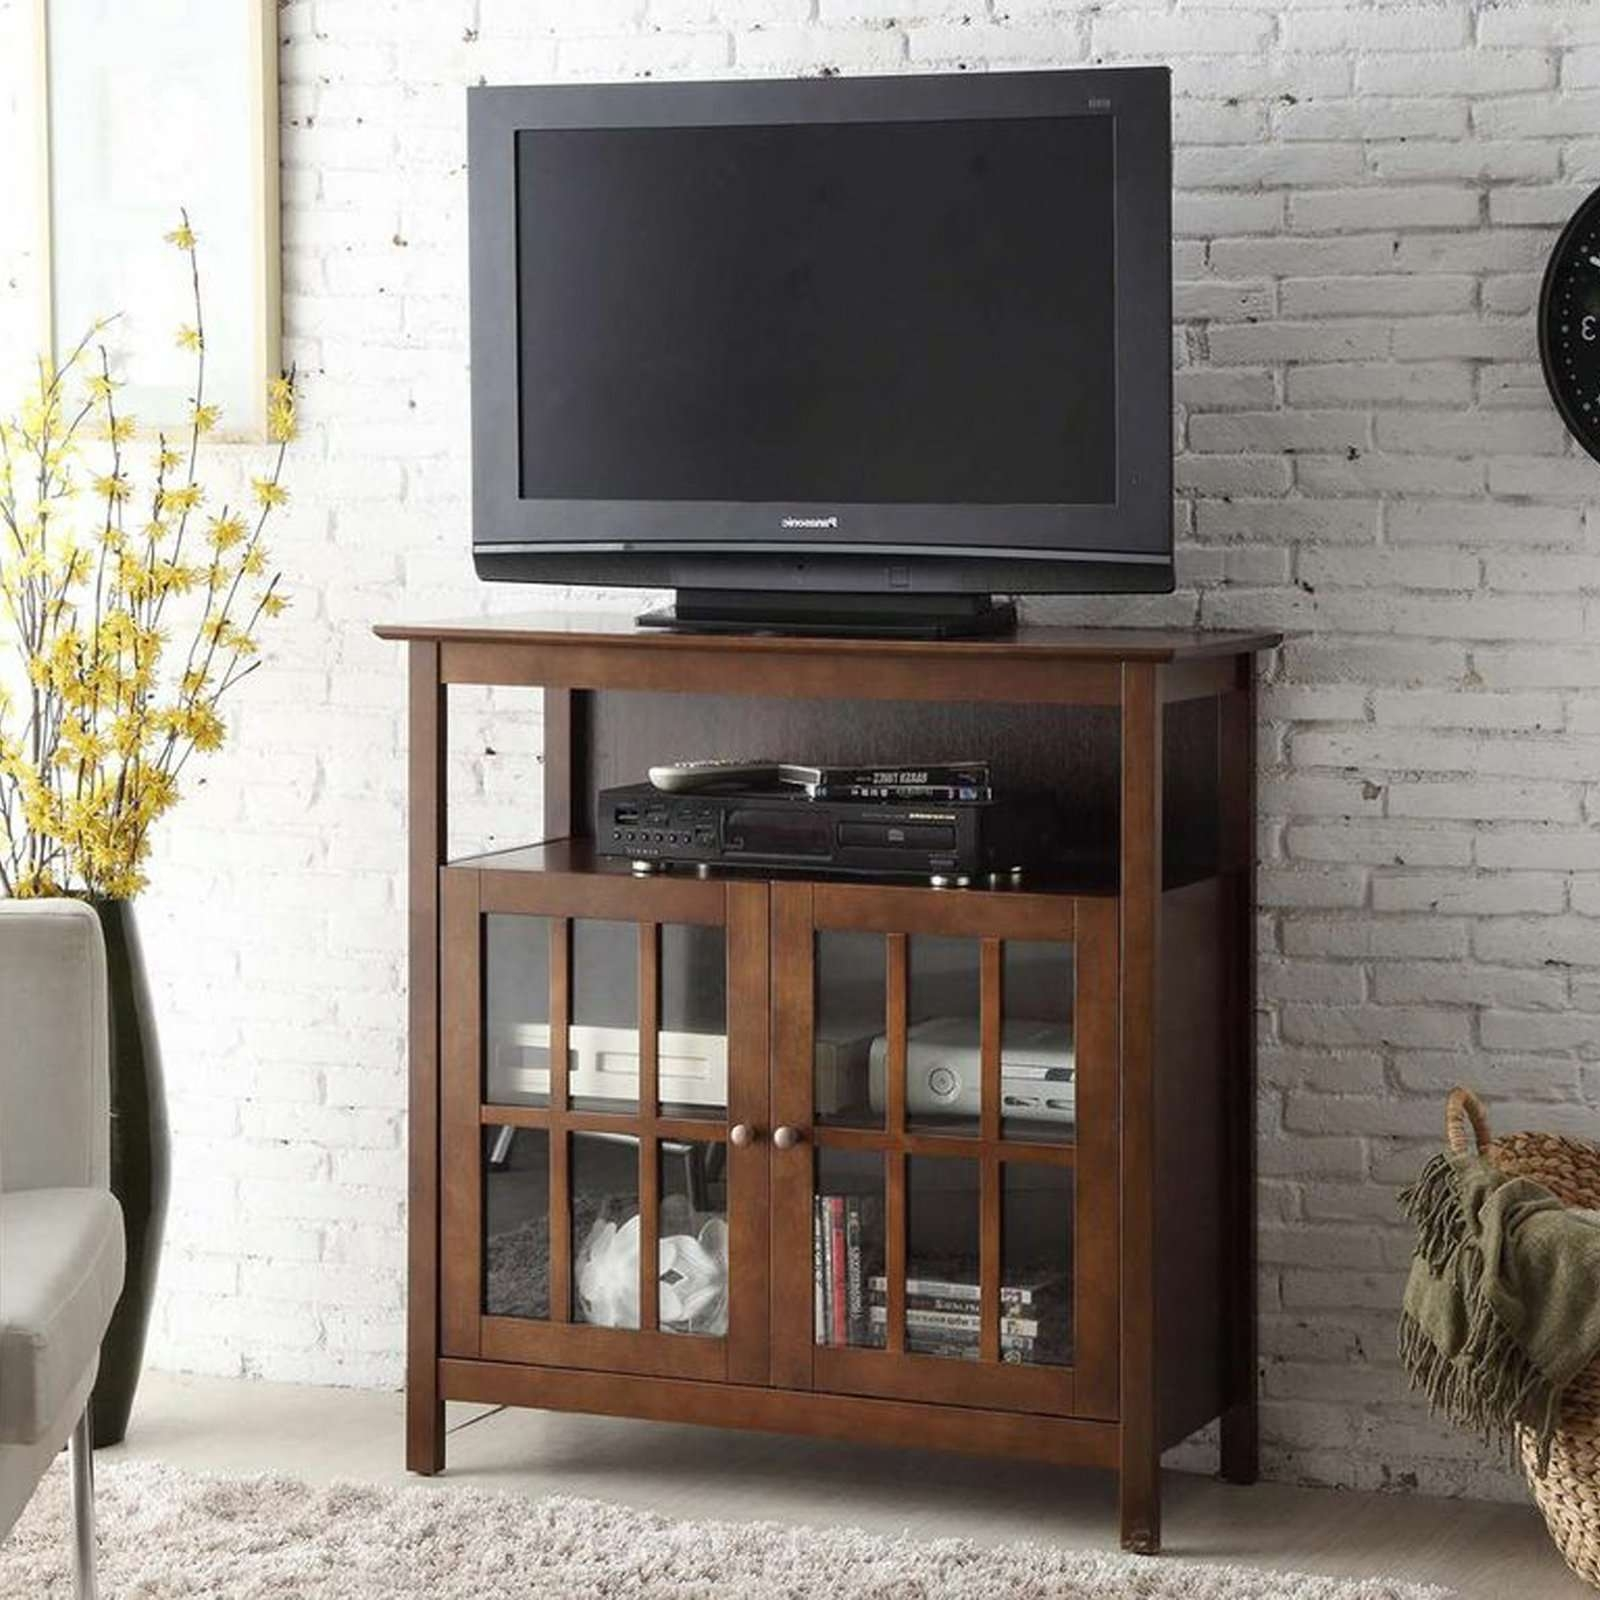 20 Best Collection Of Cheap Tall Tv Stands For Flat Screens